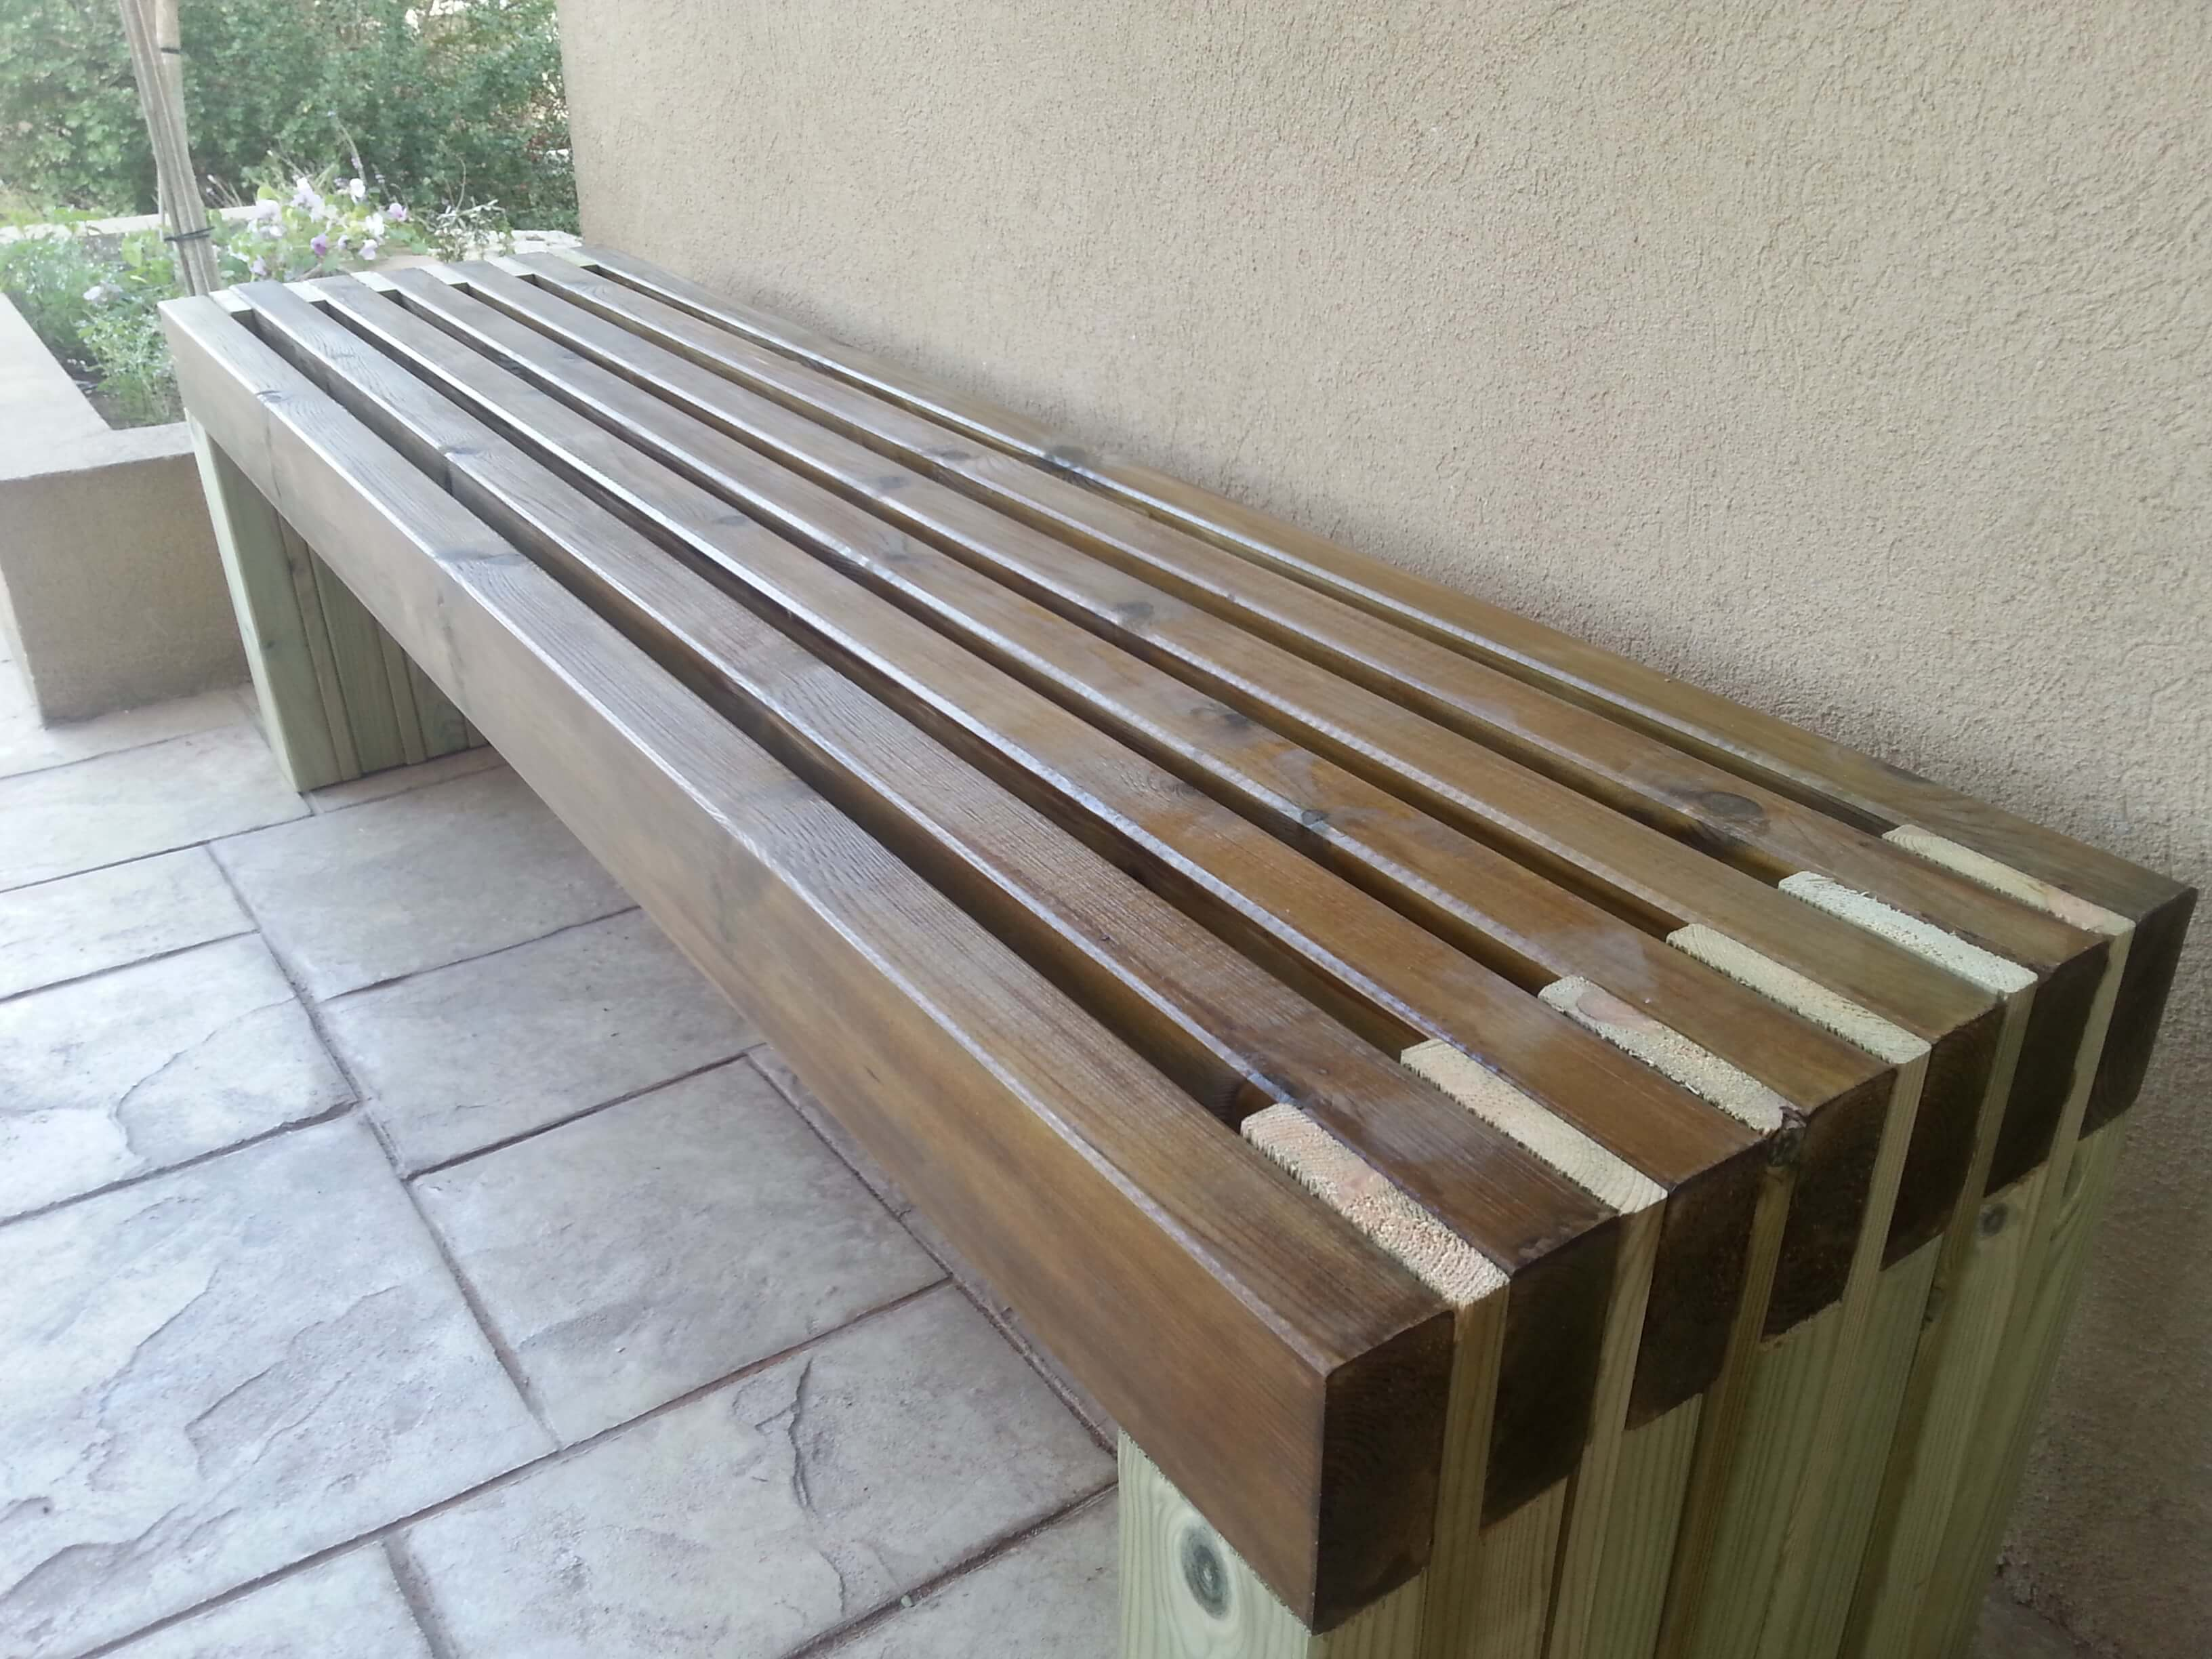 Outdoor DIY Bench Ideas: Sitting-In-The-Park Style Bench